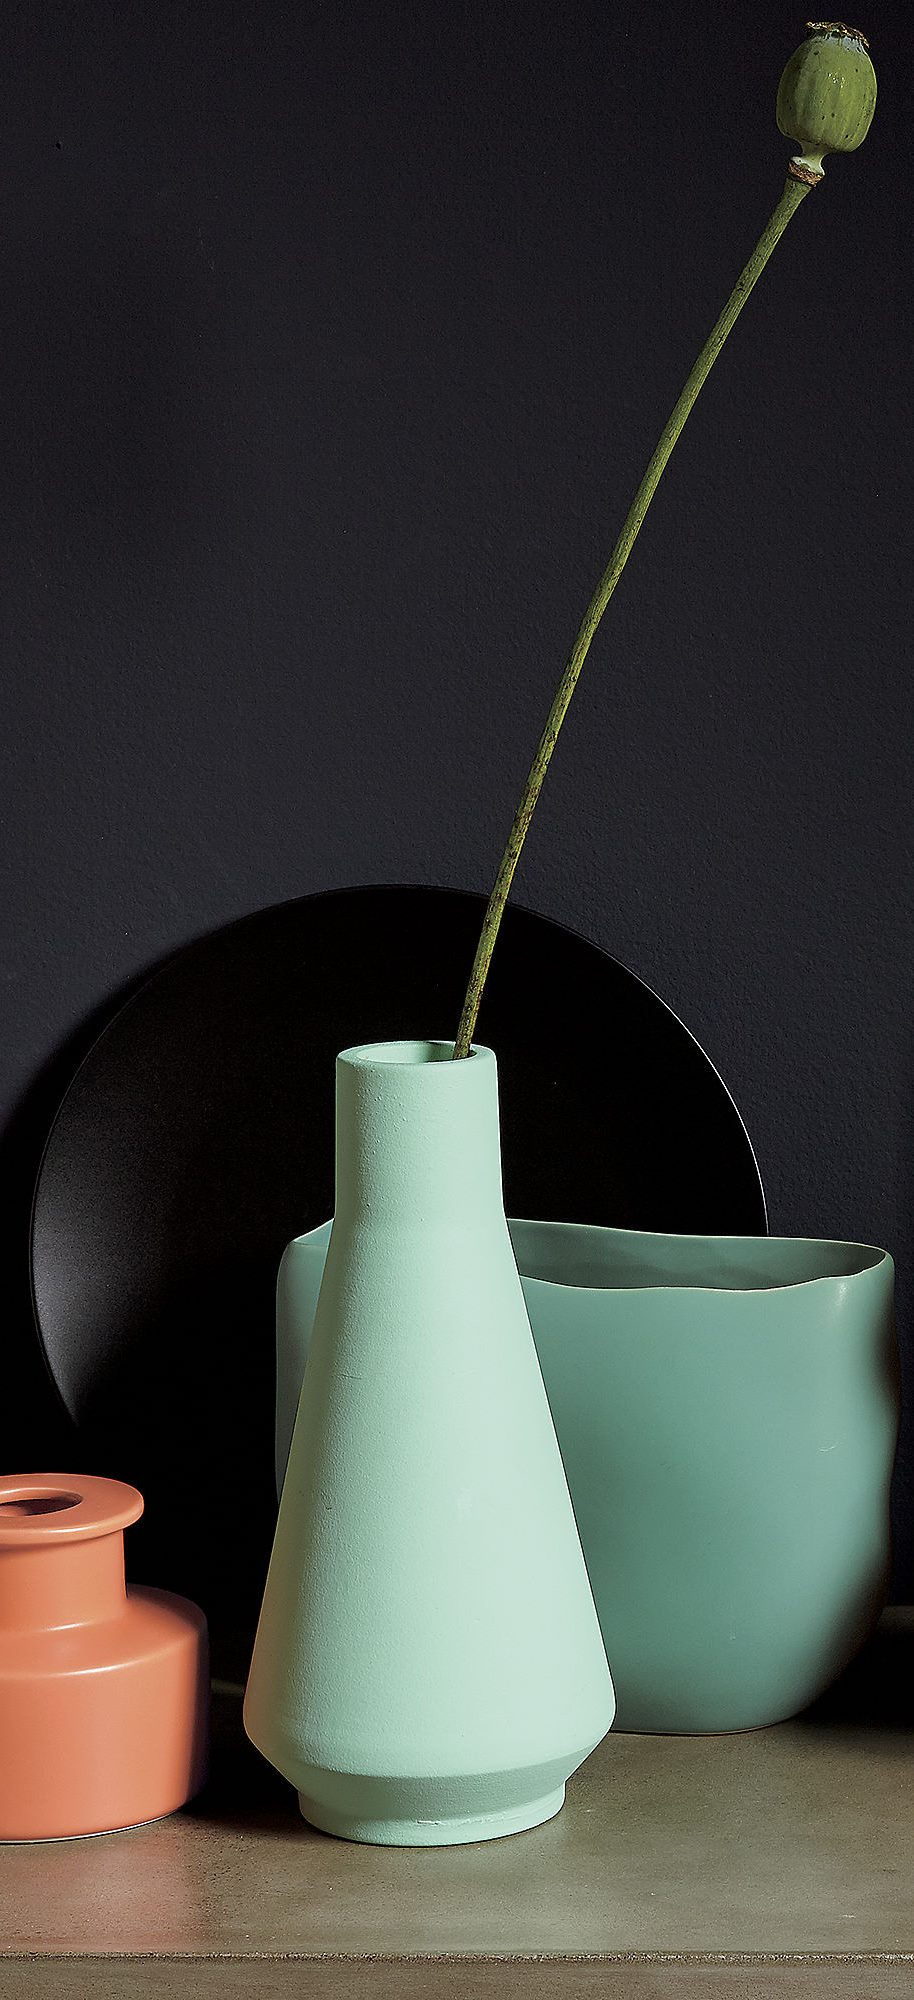 Seafoam green vase from CB2